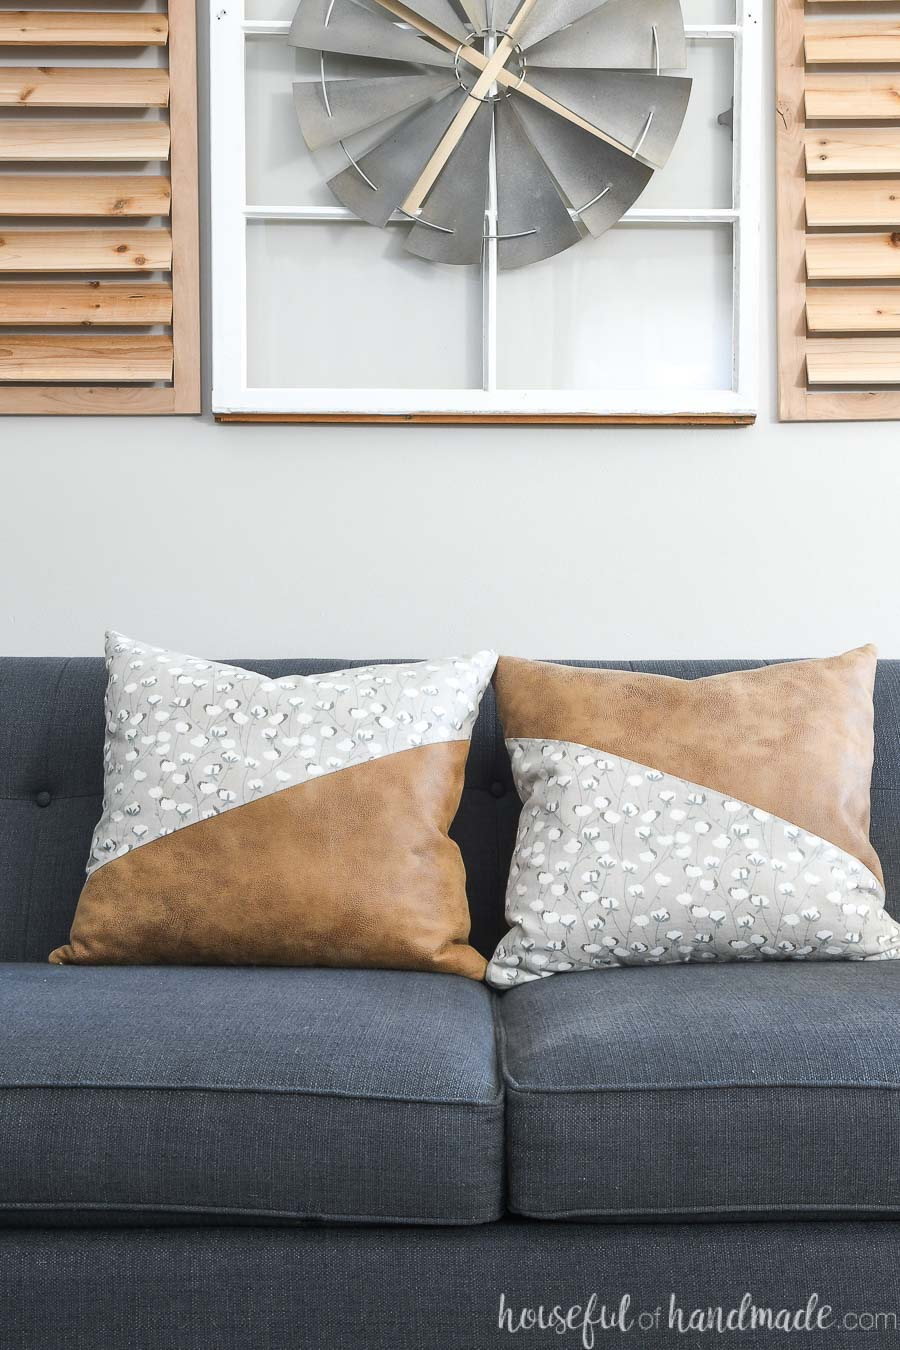 Two mirrored diagonal leather pillow covers on a sofa.